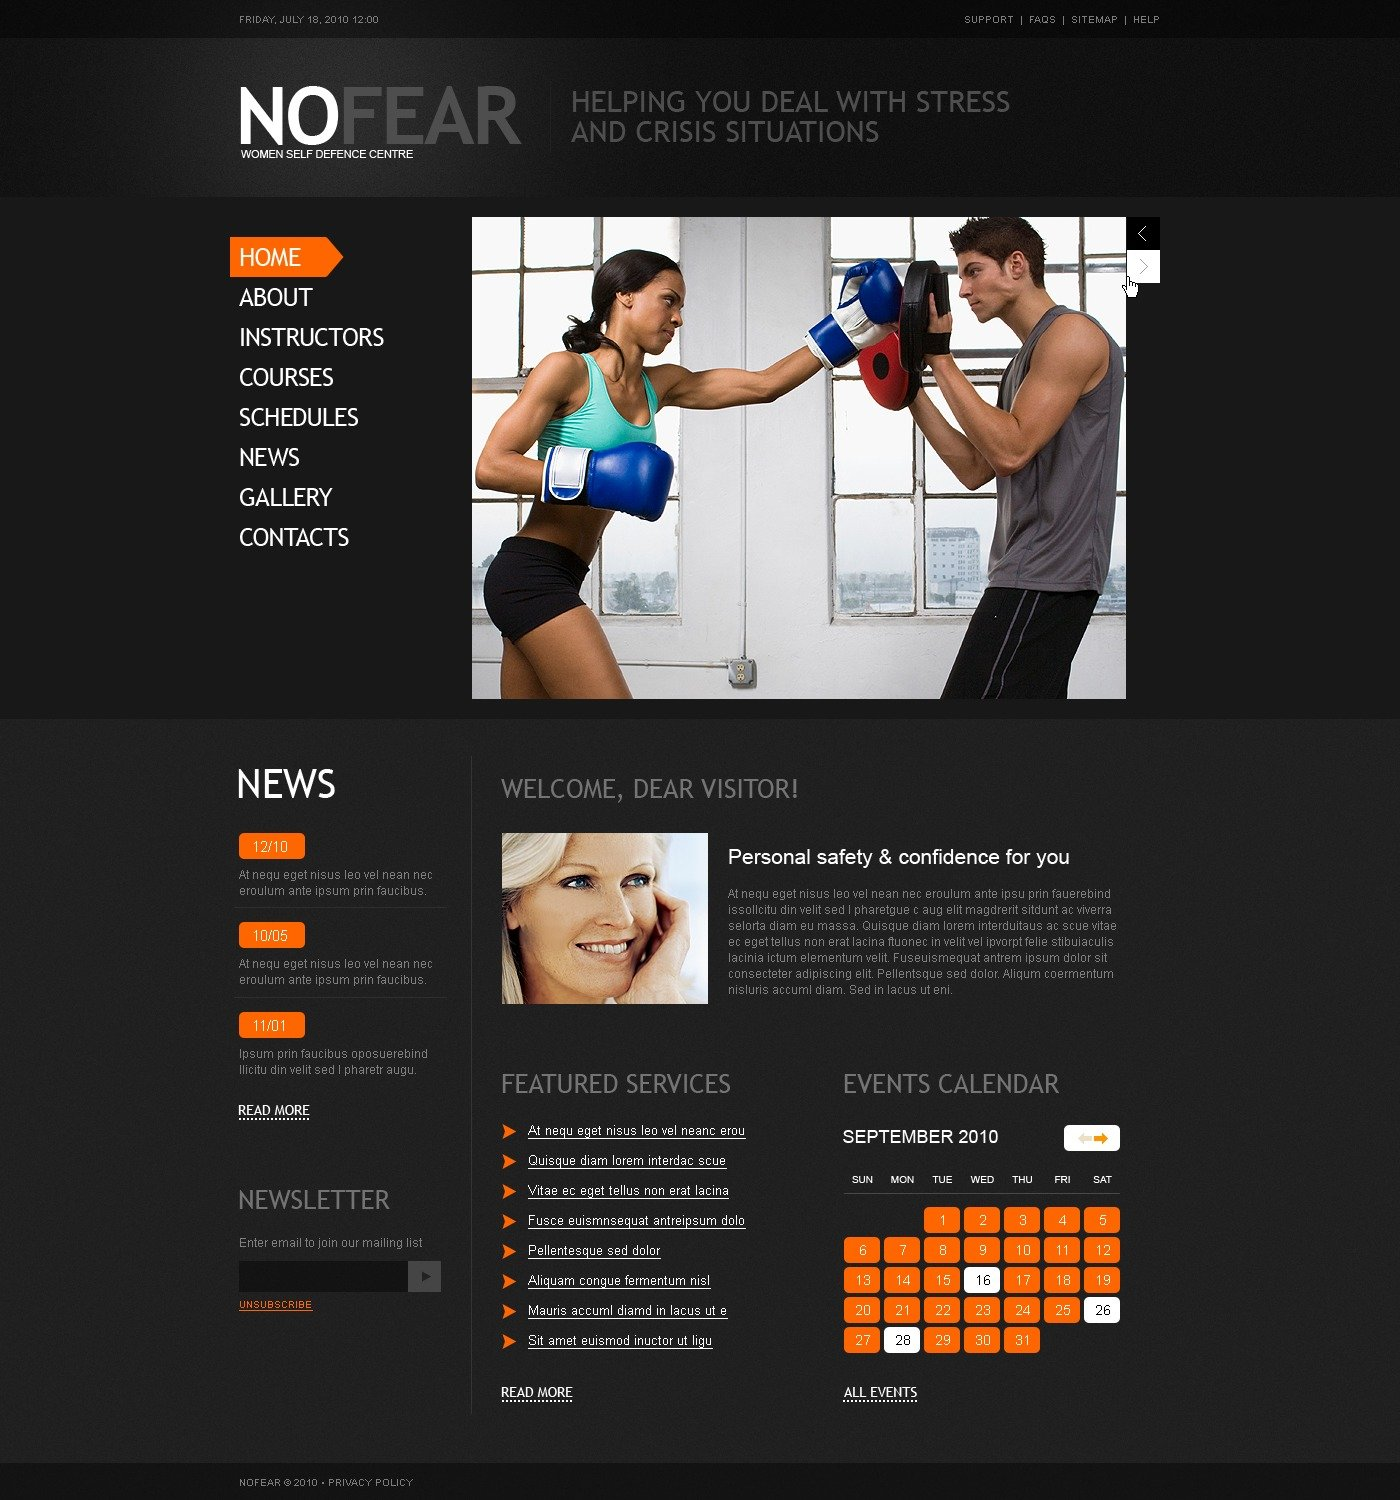 The No Fear PSD Design 54389, one of the best PSD templates of its kind (sport, wide, jquery), also known as no fear PSD template, fighting PSD template, video PSD template, tickers PSD template, photos PSD template, champions PSD template, championship PSD template, sport and related with no fear, fighting, video, tickers, photos, champions, championship, sport, etc.